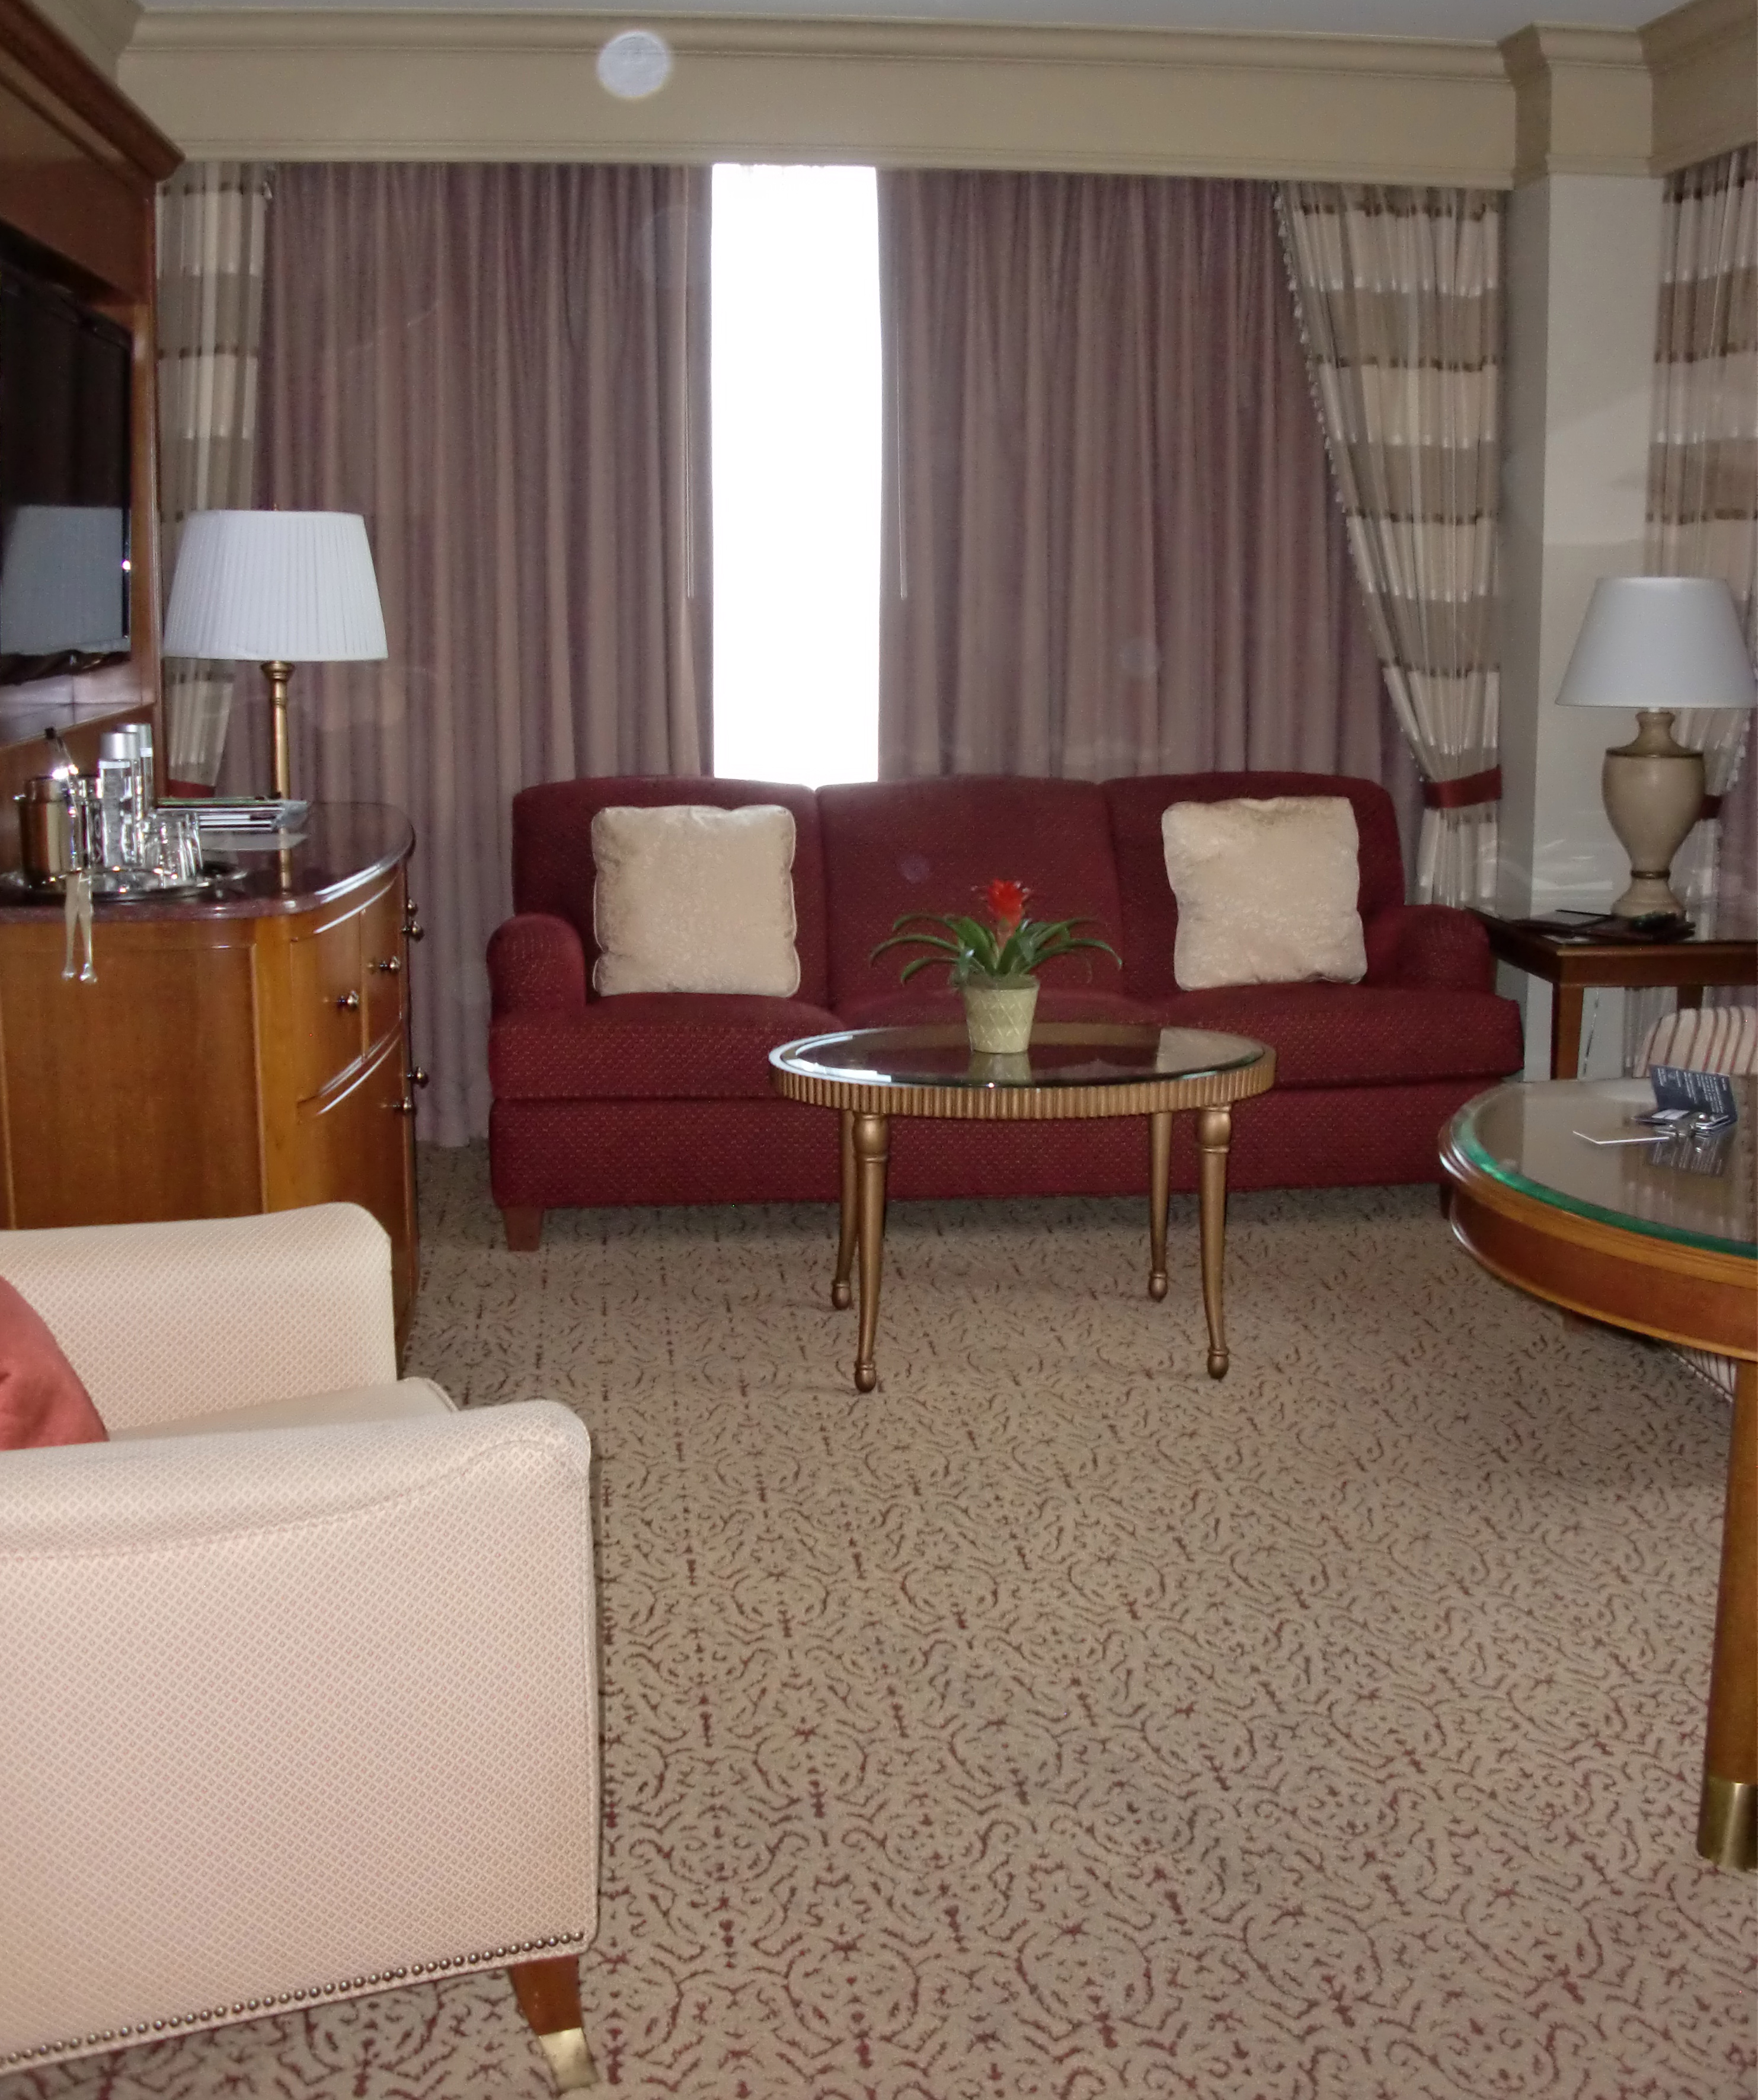 Old Living Room: Conrad Indianapolis: As Distinctively Yours As A Little